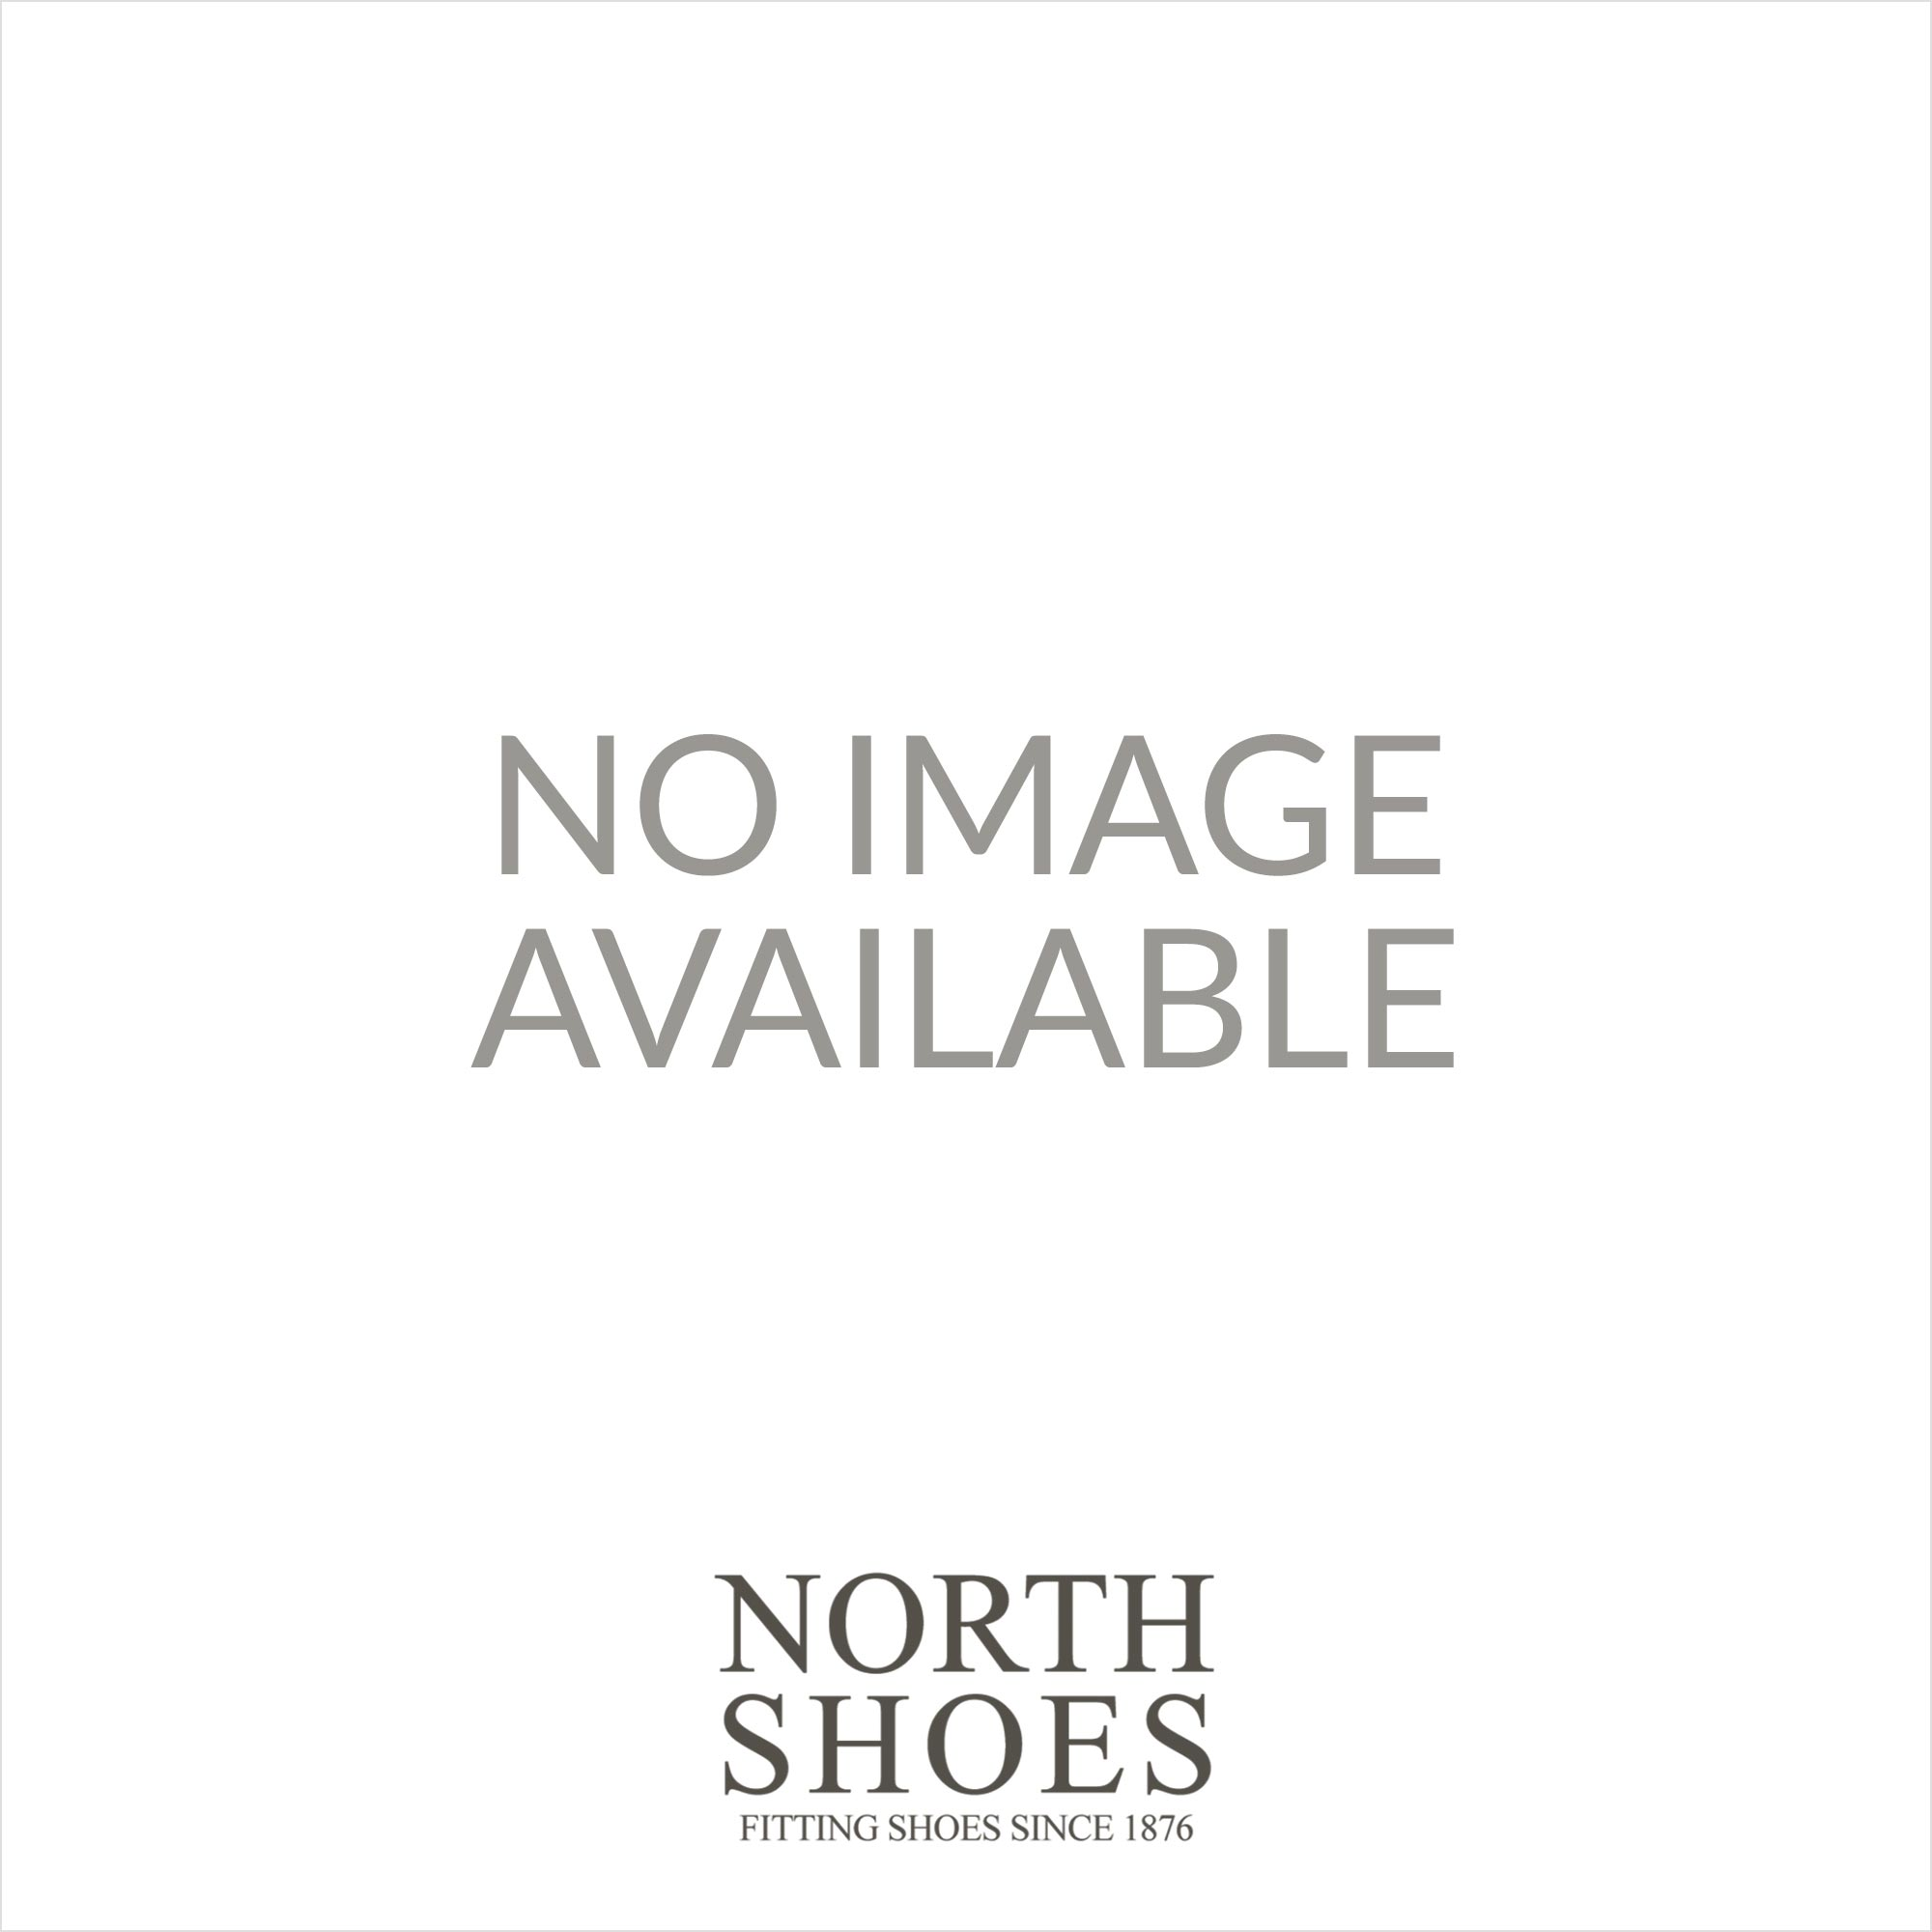 0b1db6b3ff Rieker 93780-14 Navy Womens Heeled Ankle Boot - Rieker from North ...